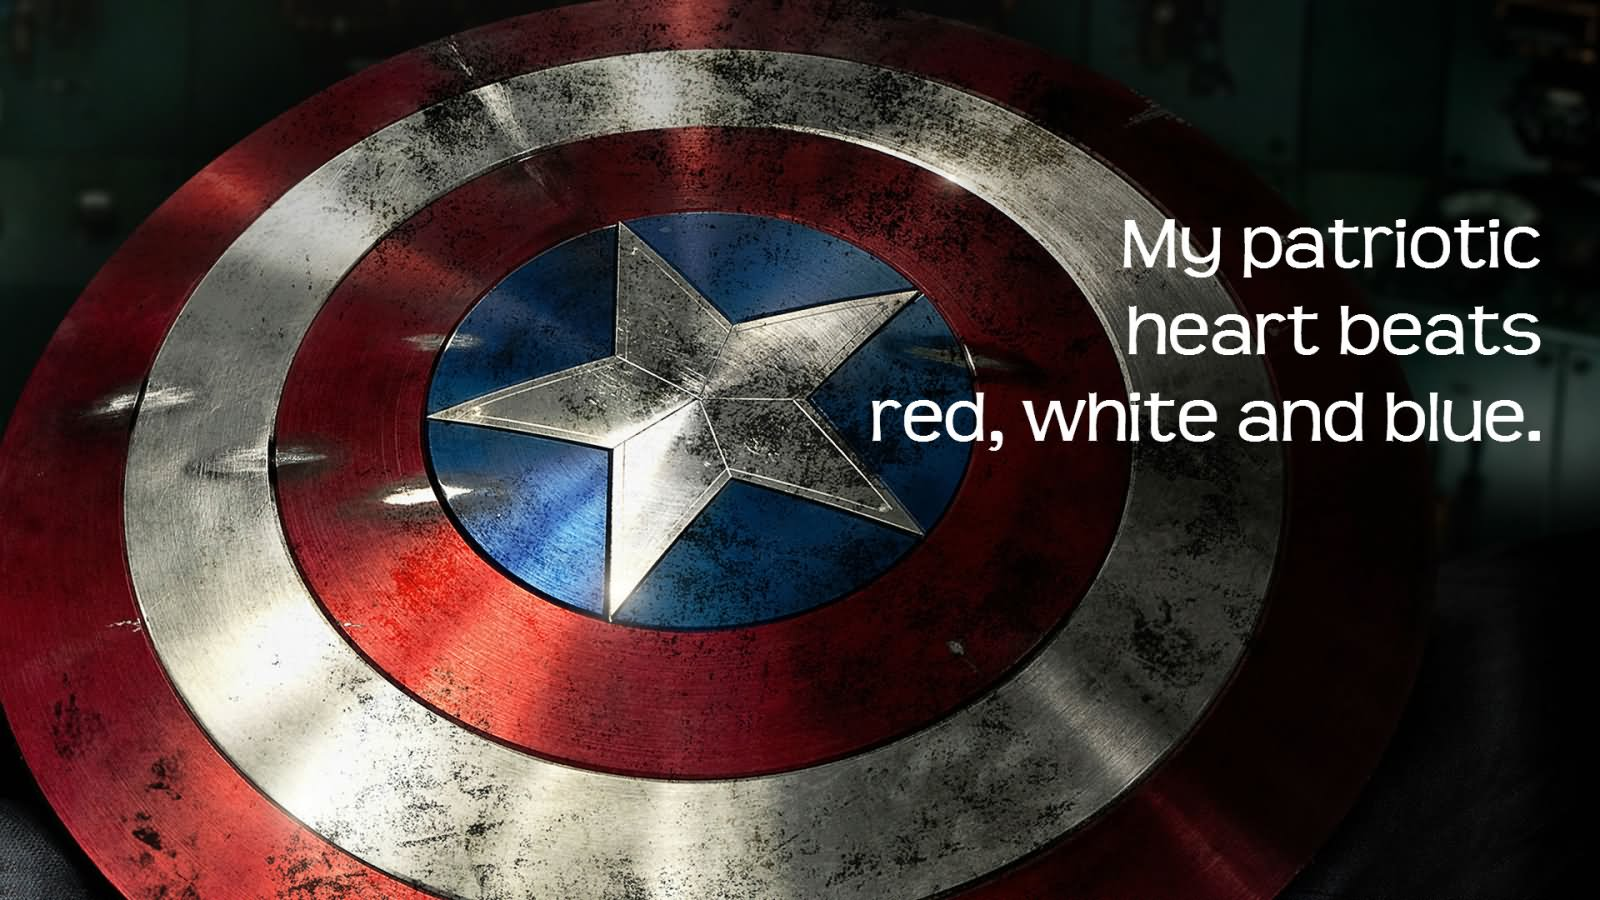 My Patriotic Heart Beats Red, White And Blue